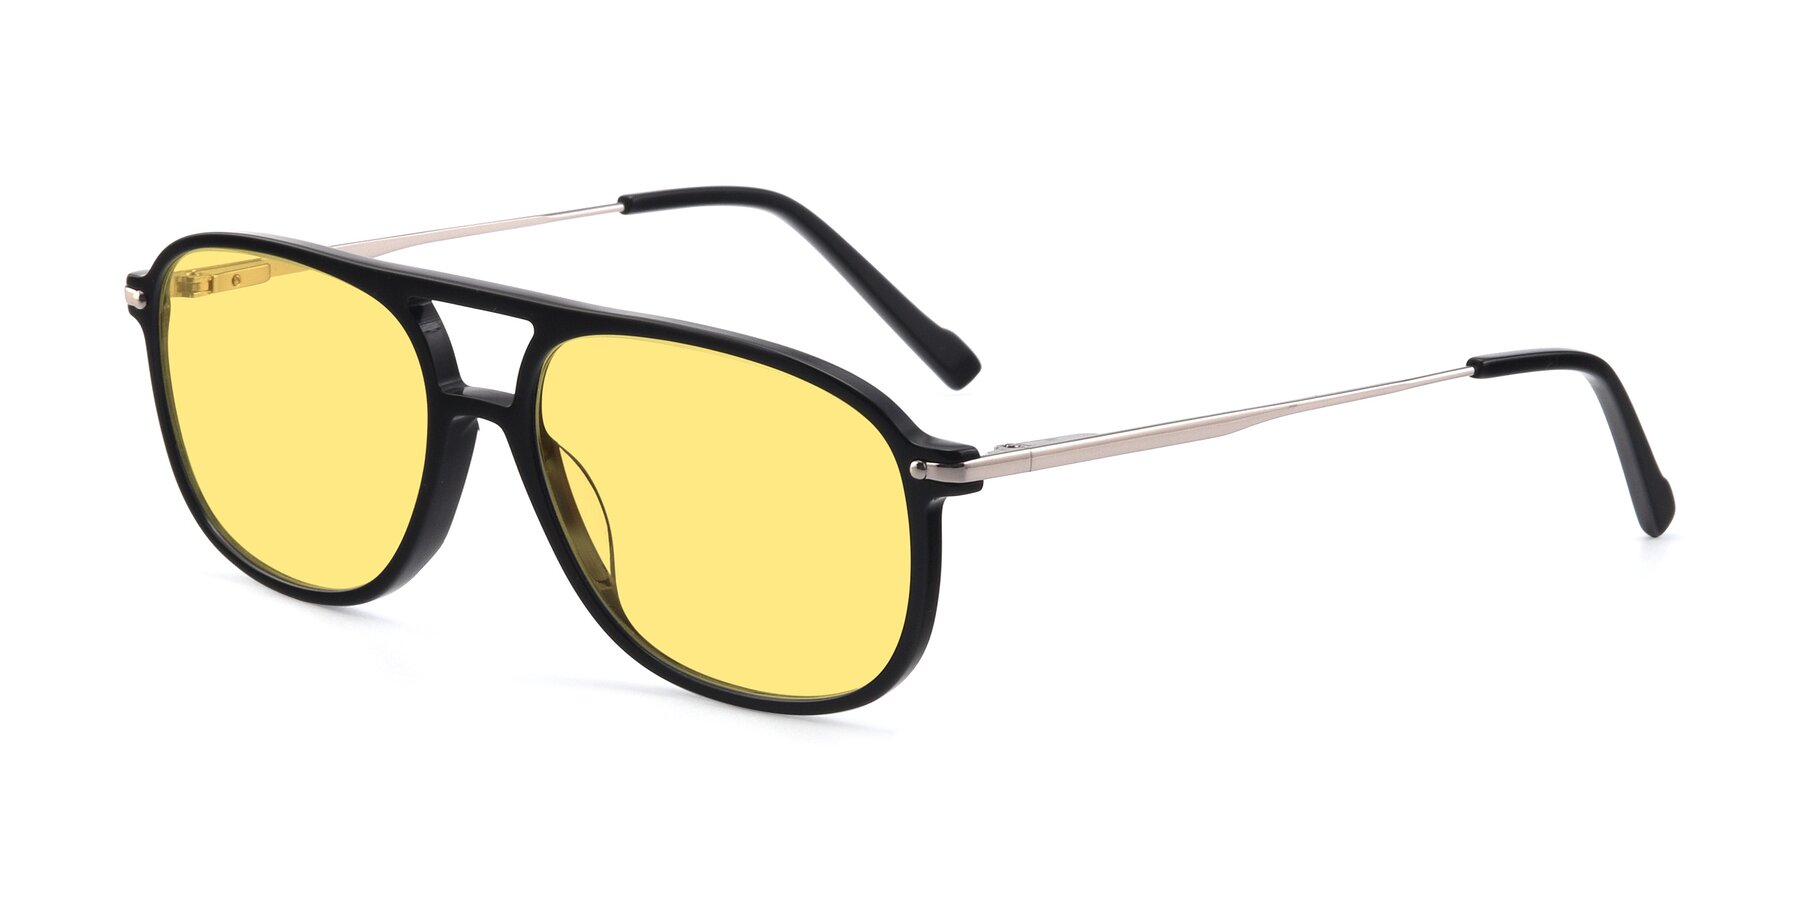 Angle of 17580 in Black with Medium Yellow Tinted Lenses